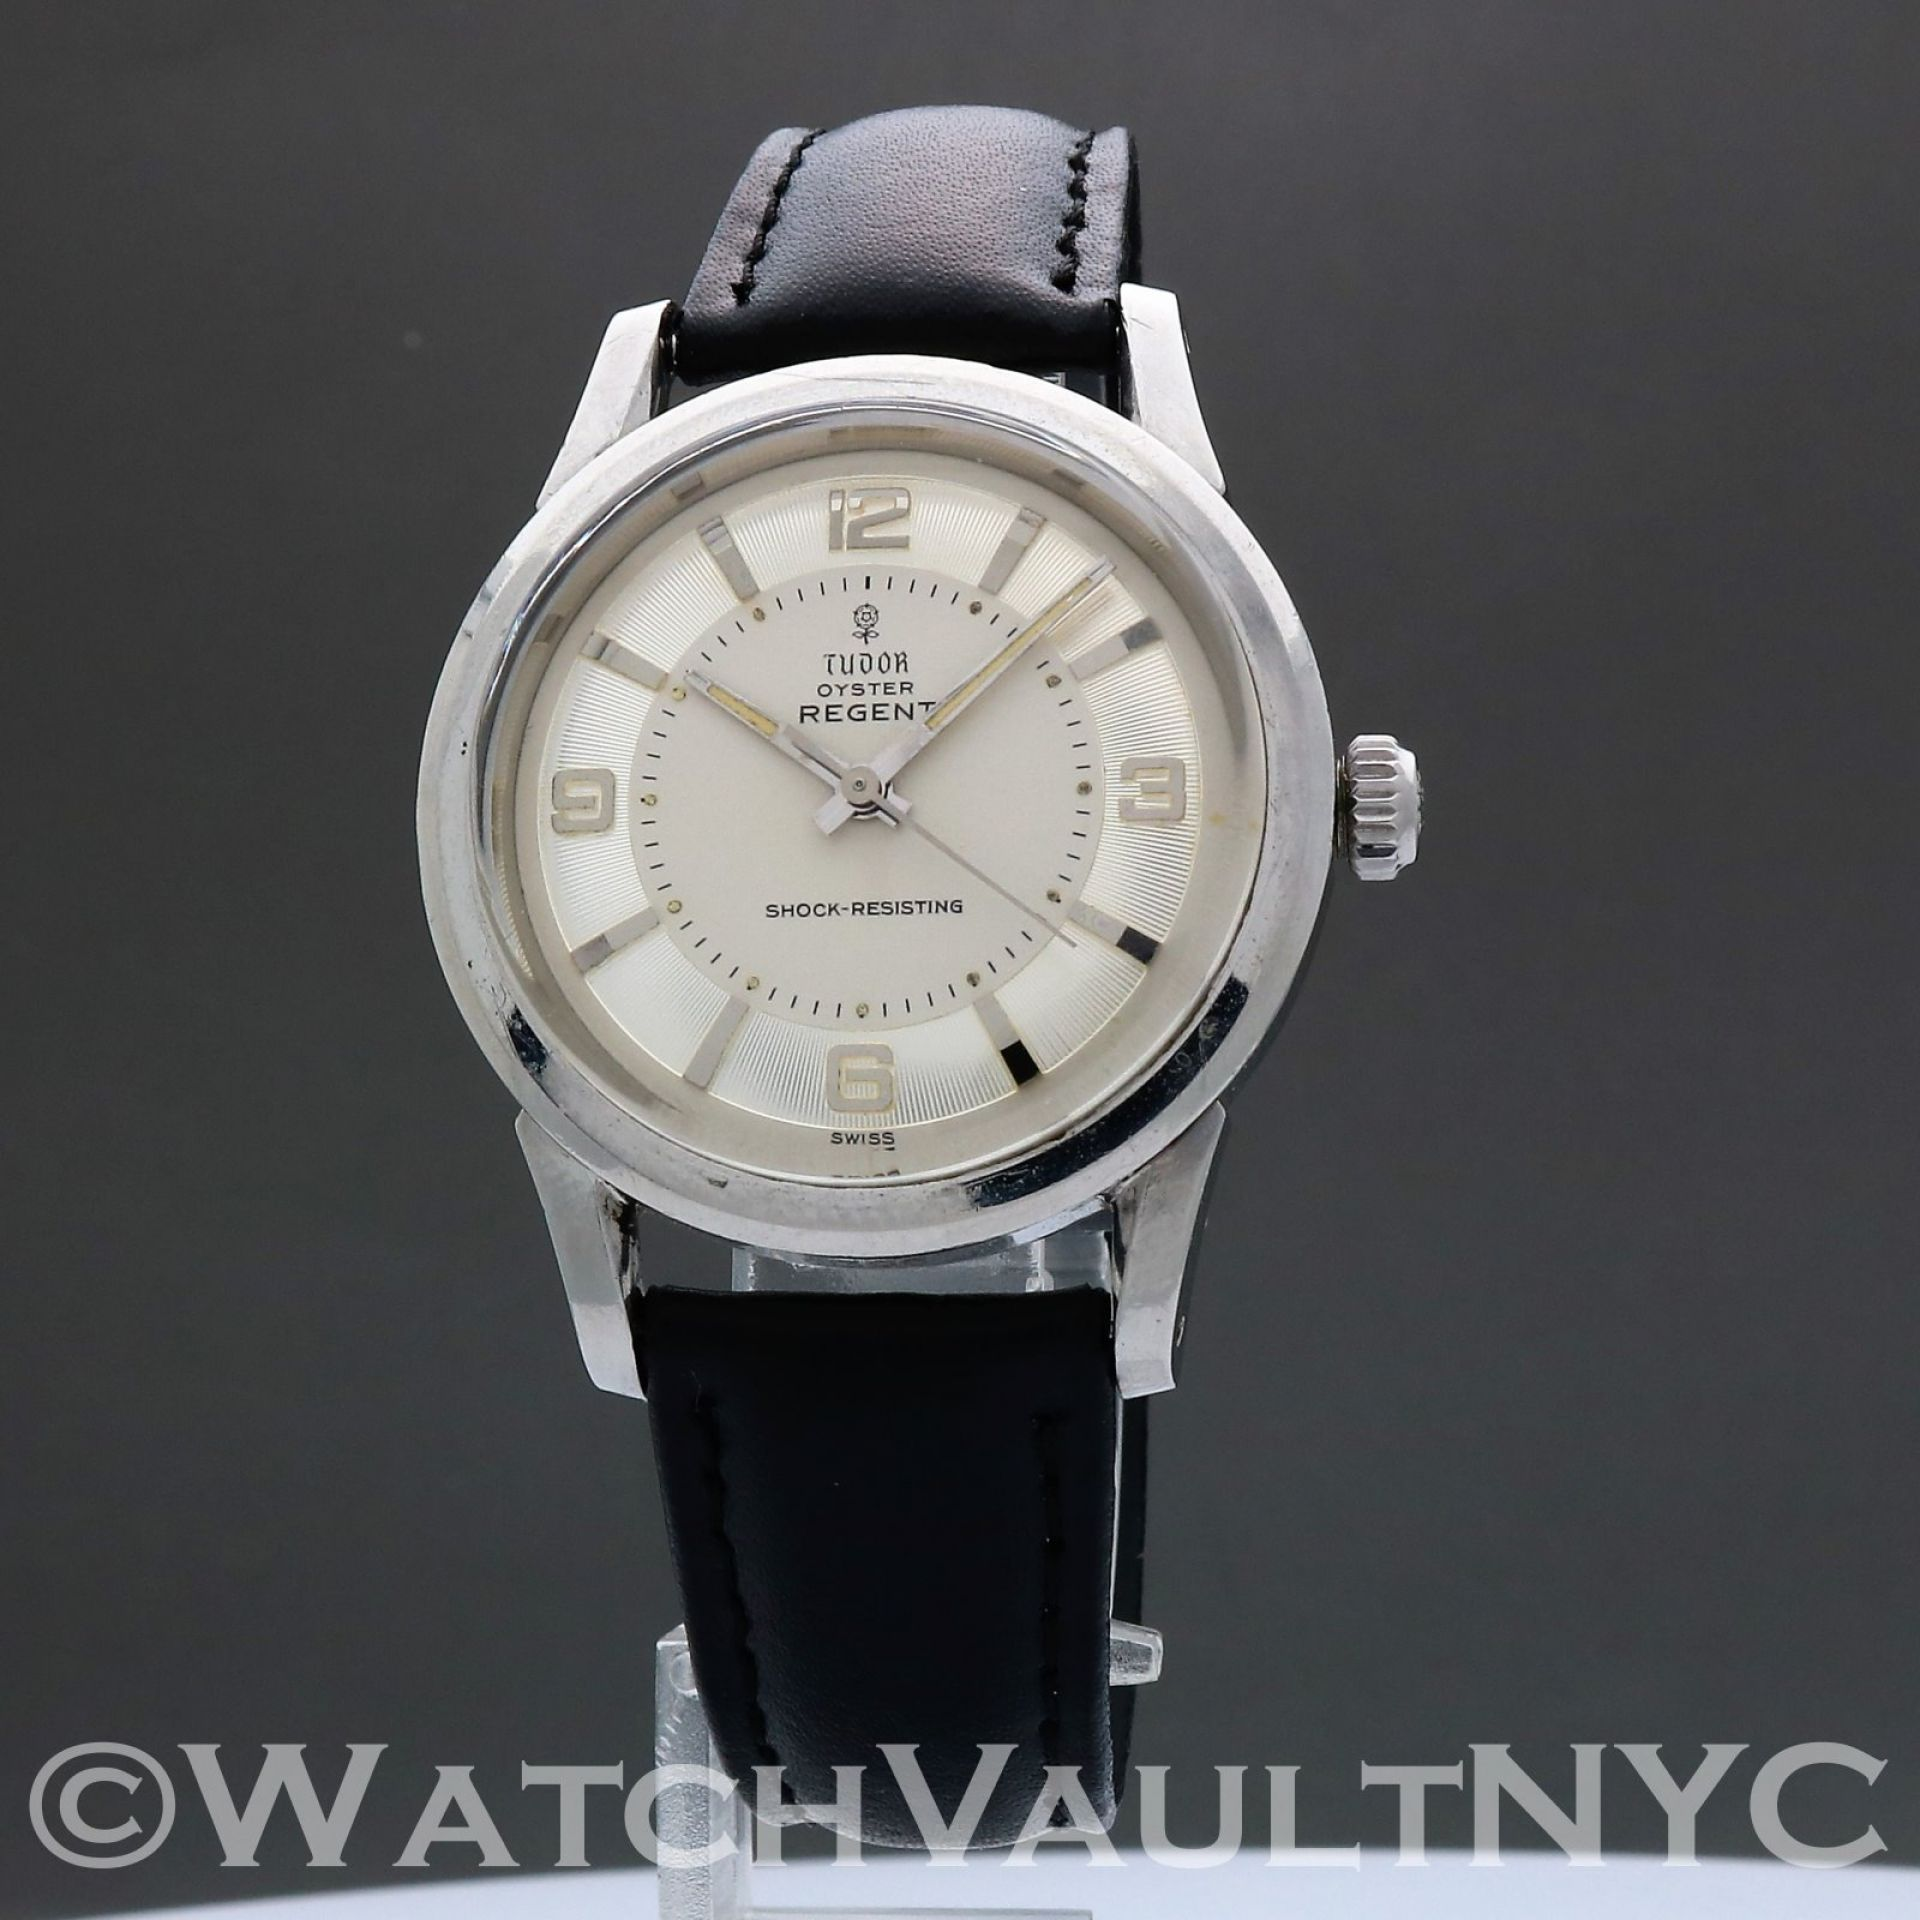 Tudor Oyster Regent 7959 1963 Vintage 34mm Manual RL507